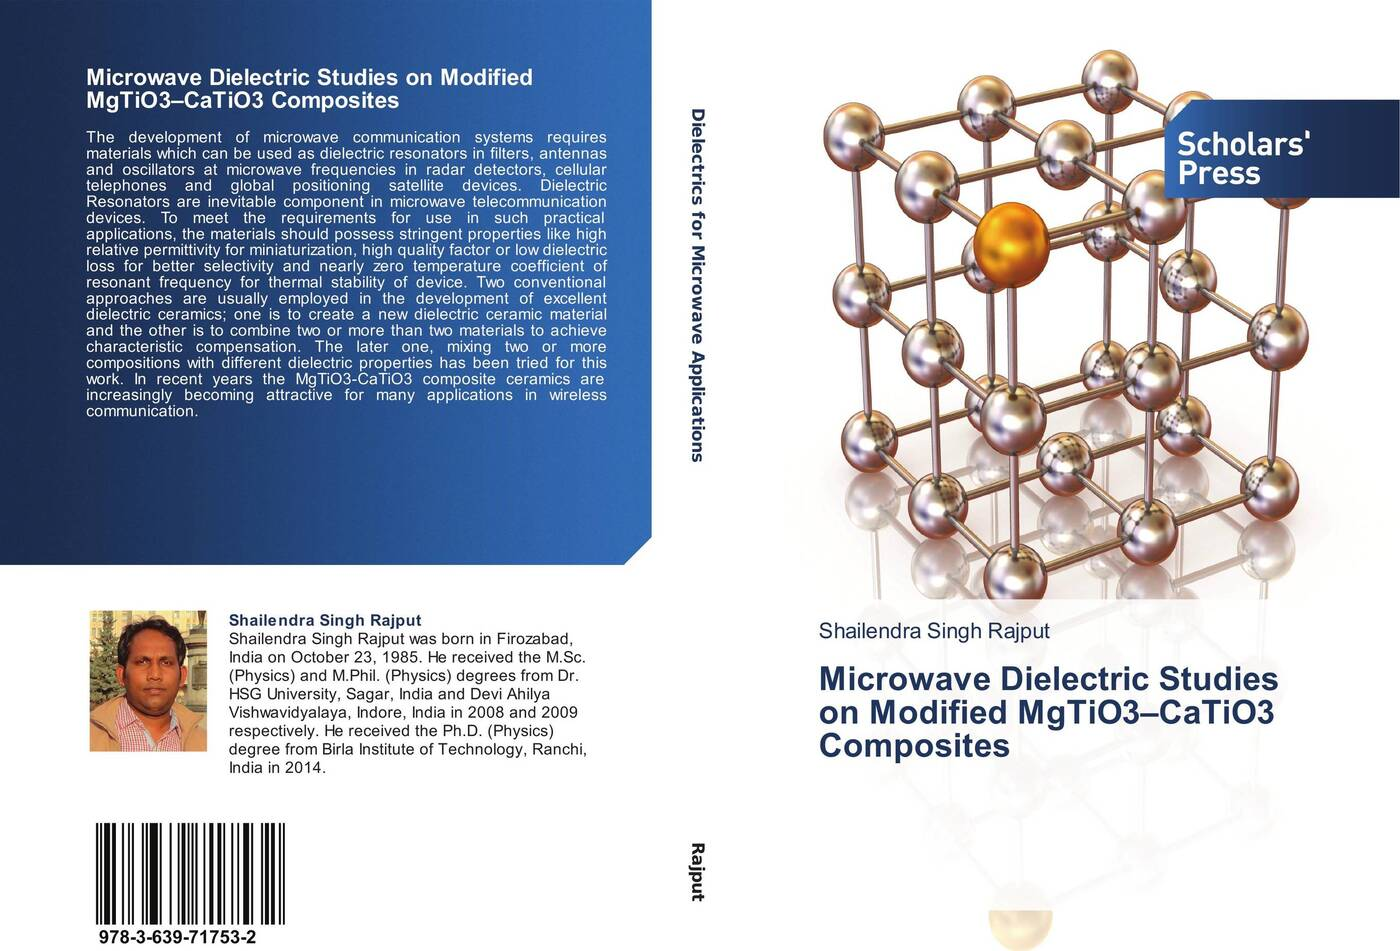 Shailendra Singh Rajput Microwave Dielectric Studies on Modified MgTiO3-CaTiO3 Composites magnetic and dielectric properties of materials